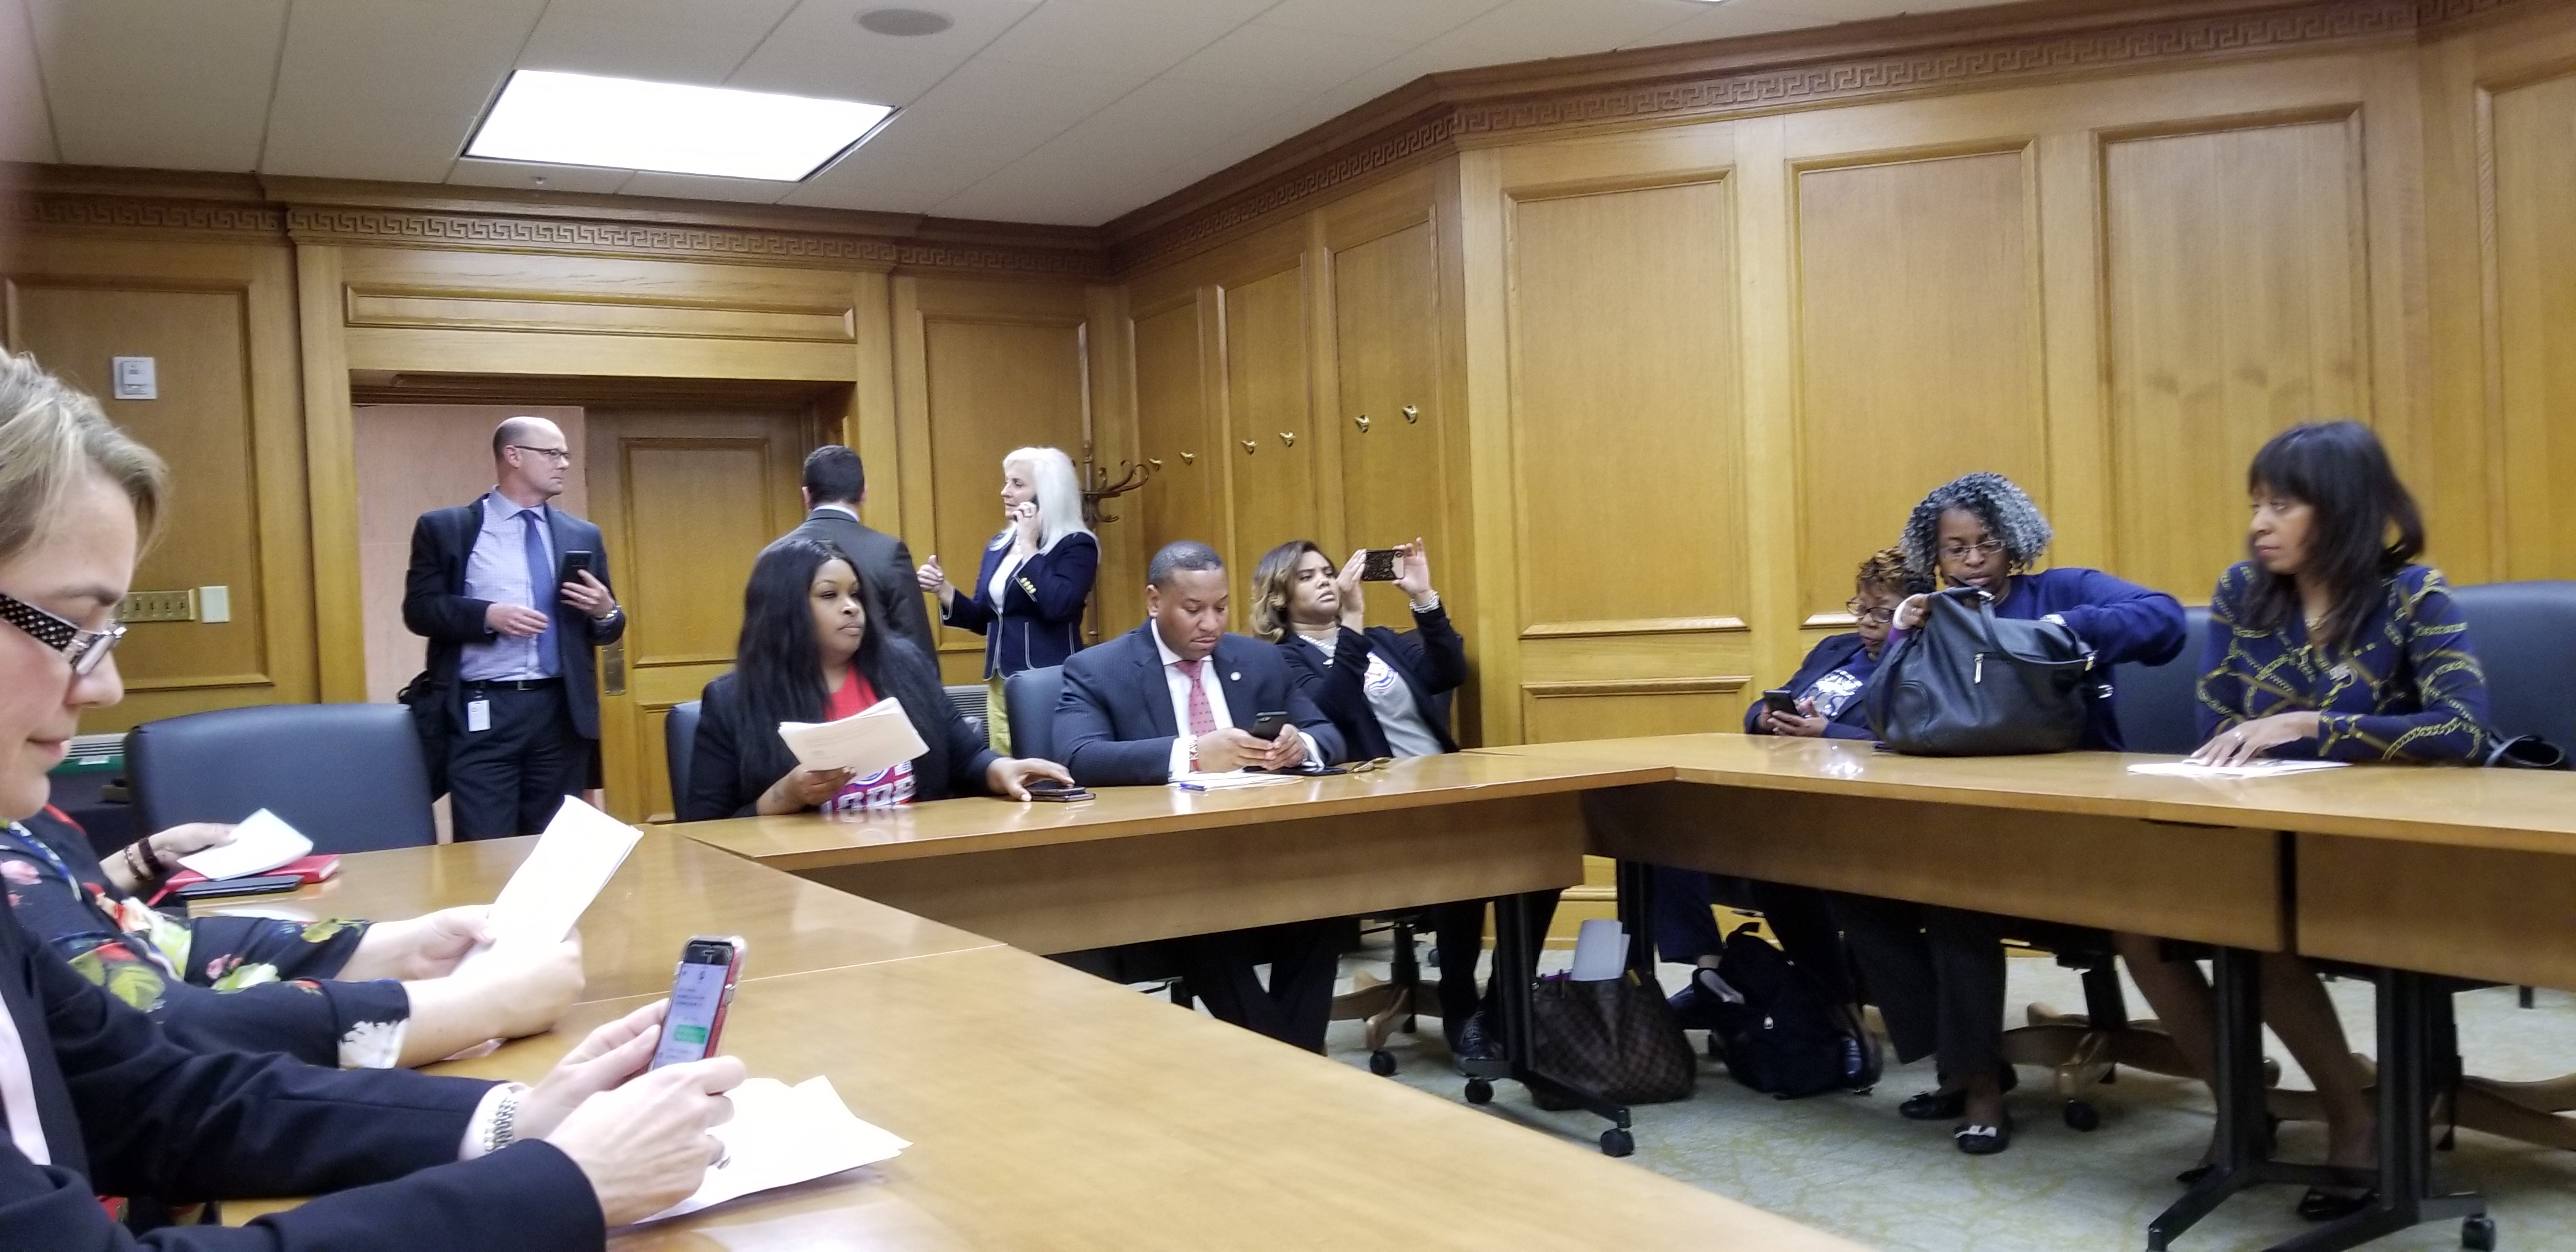 TN School Boards Visit with Governor Lee, April 16, 2019